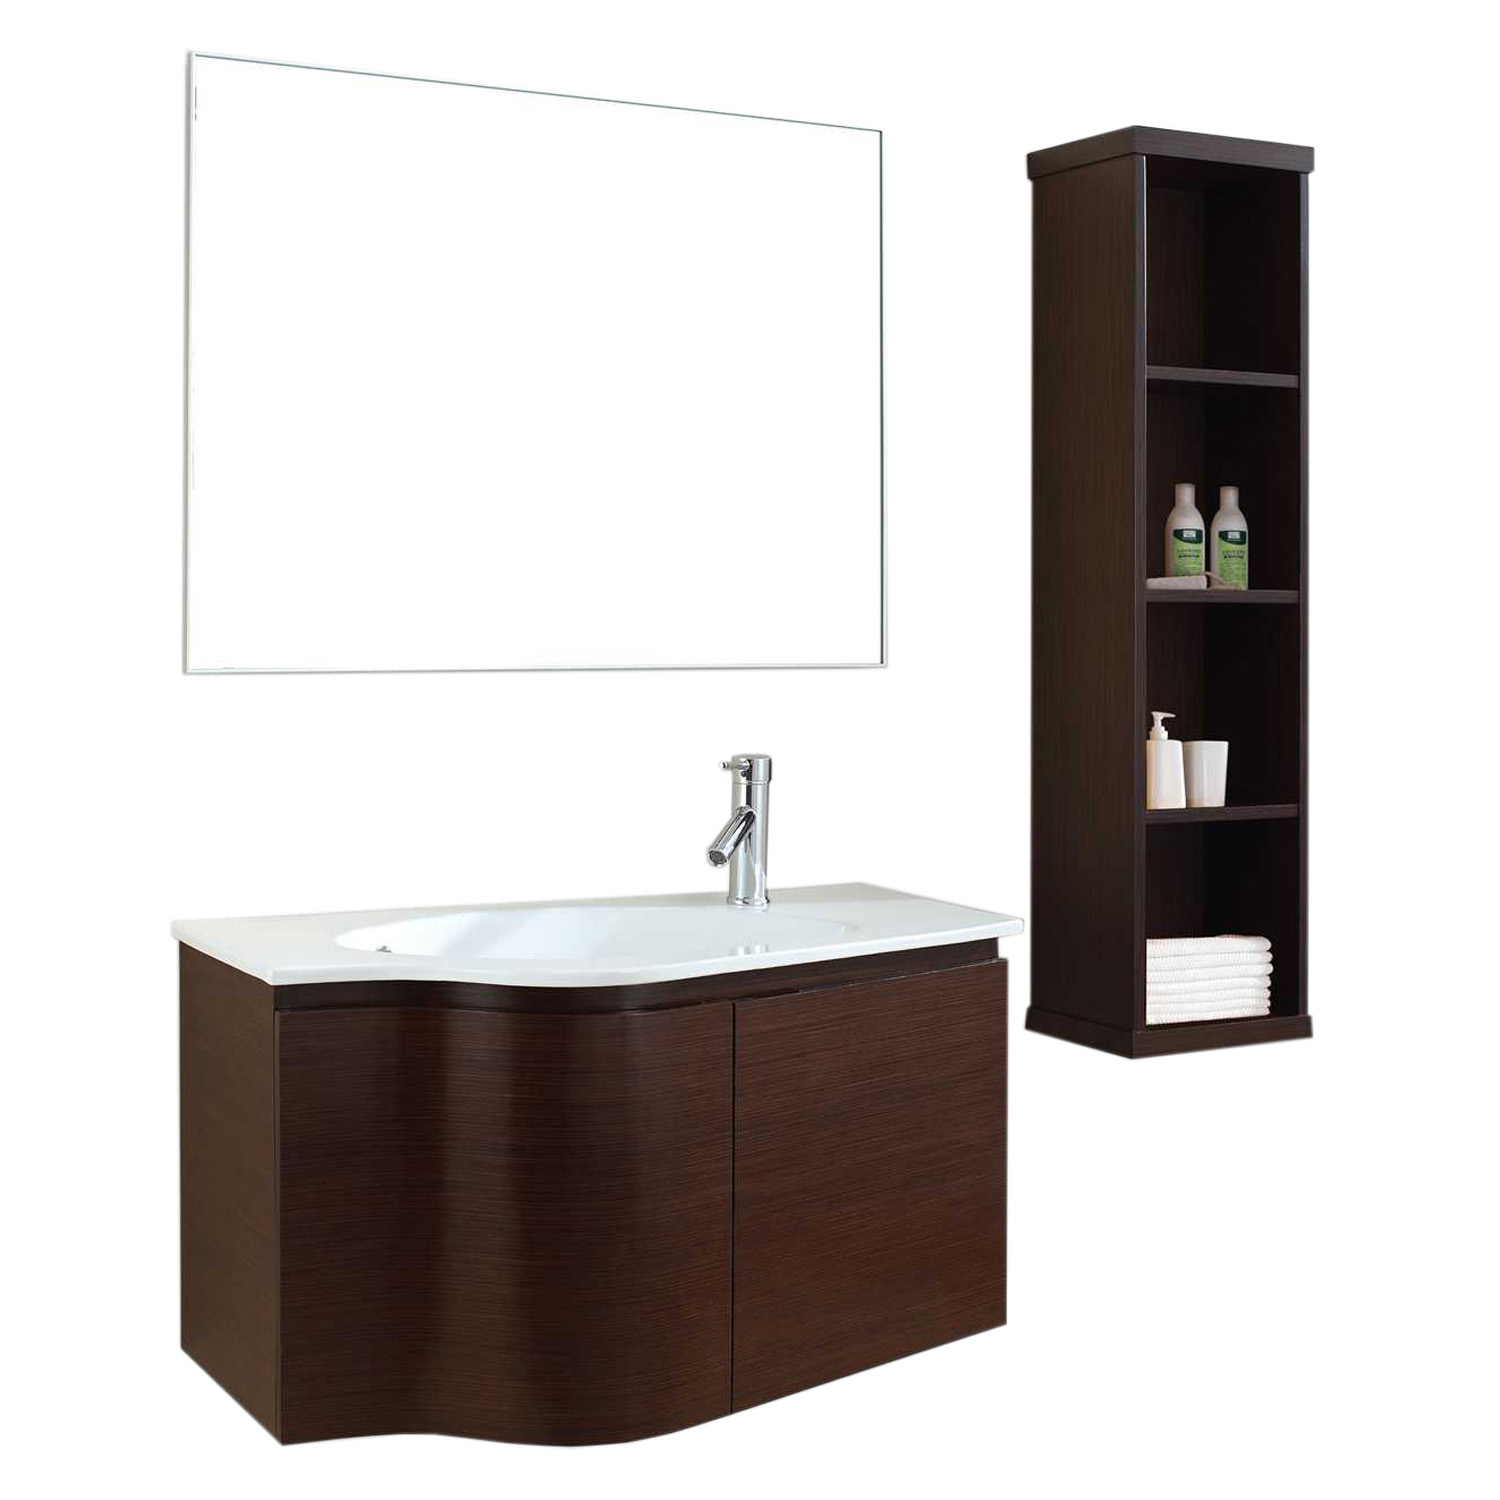 "36"" Single Bath Vanity in Walnut with White Ceramic Top and Round Sink with Mirror"